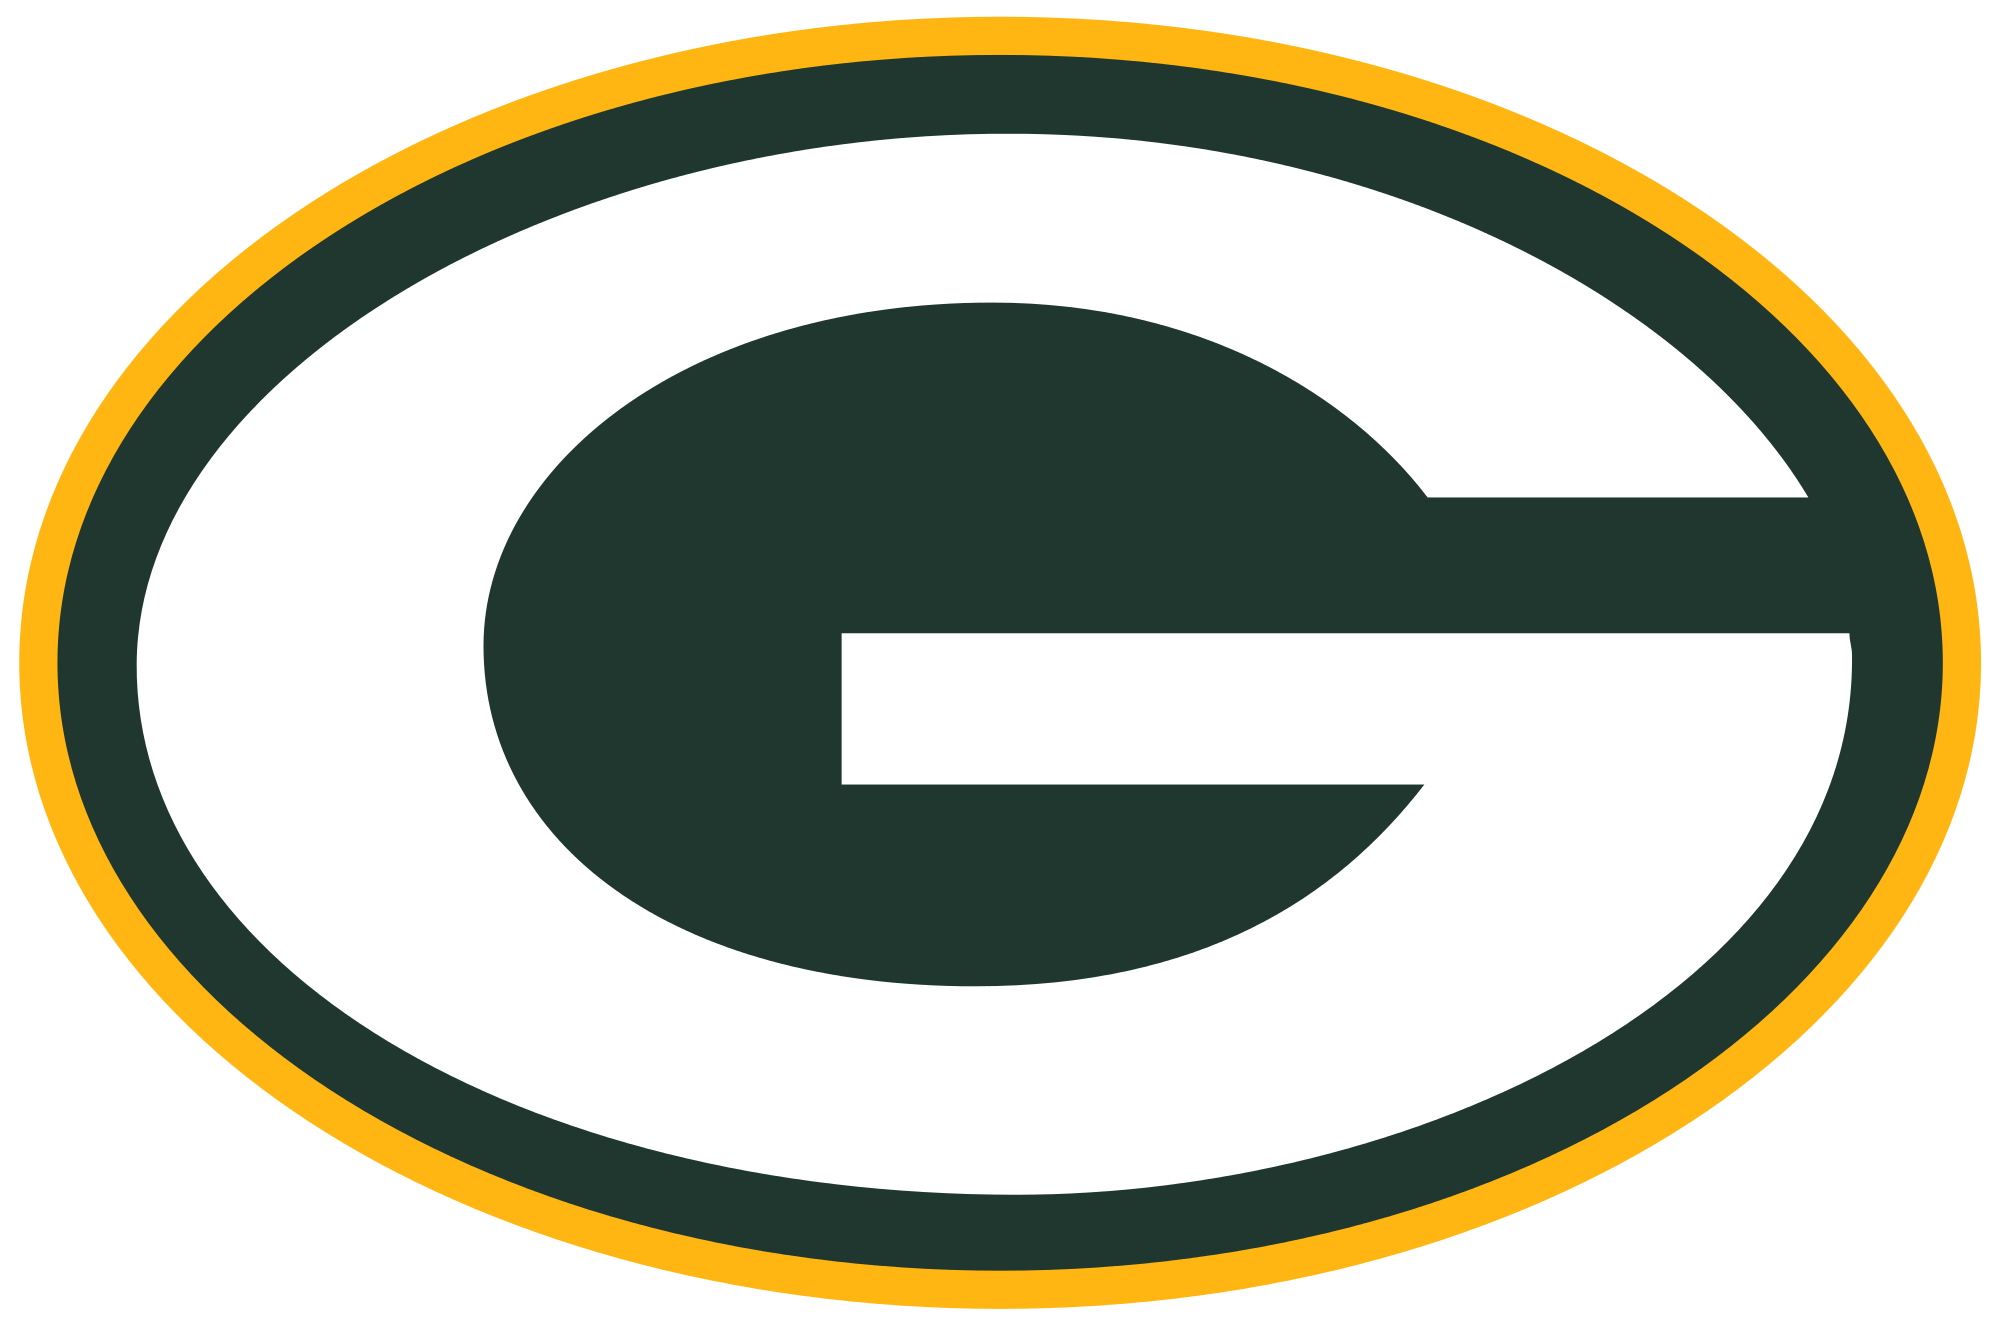 Green bay png. Packers logo transparent stickpng